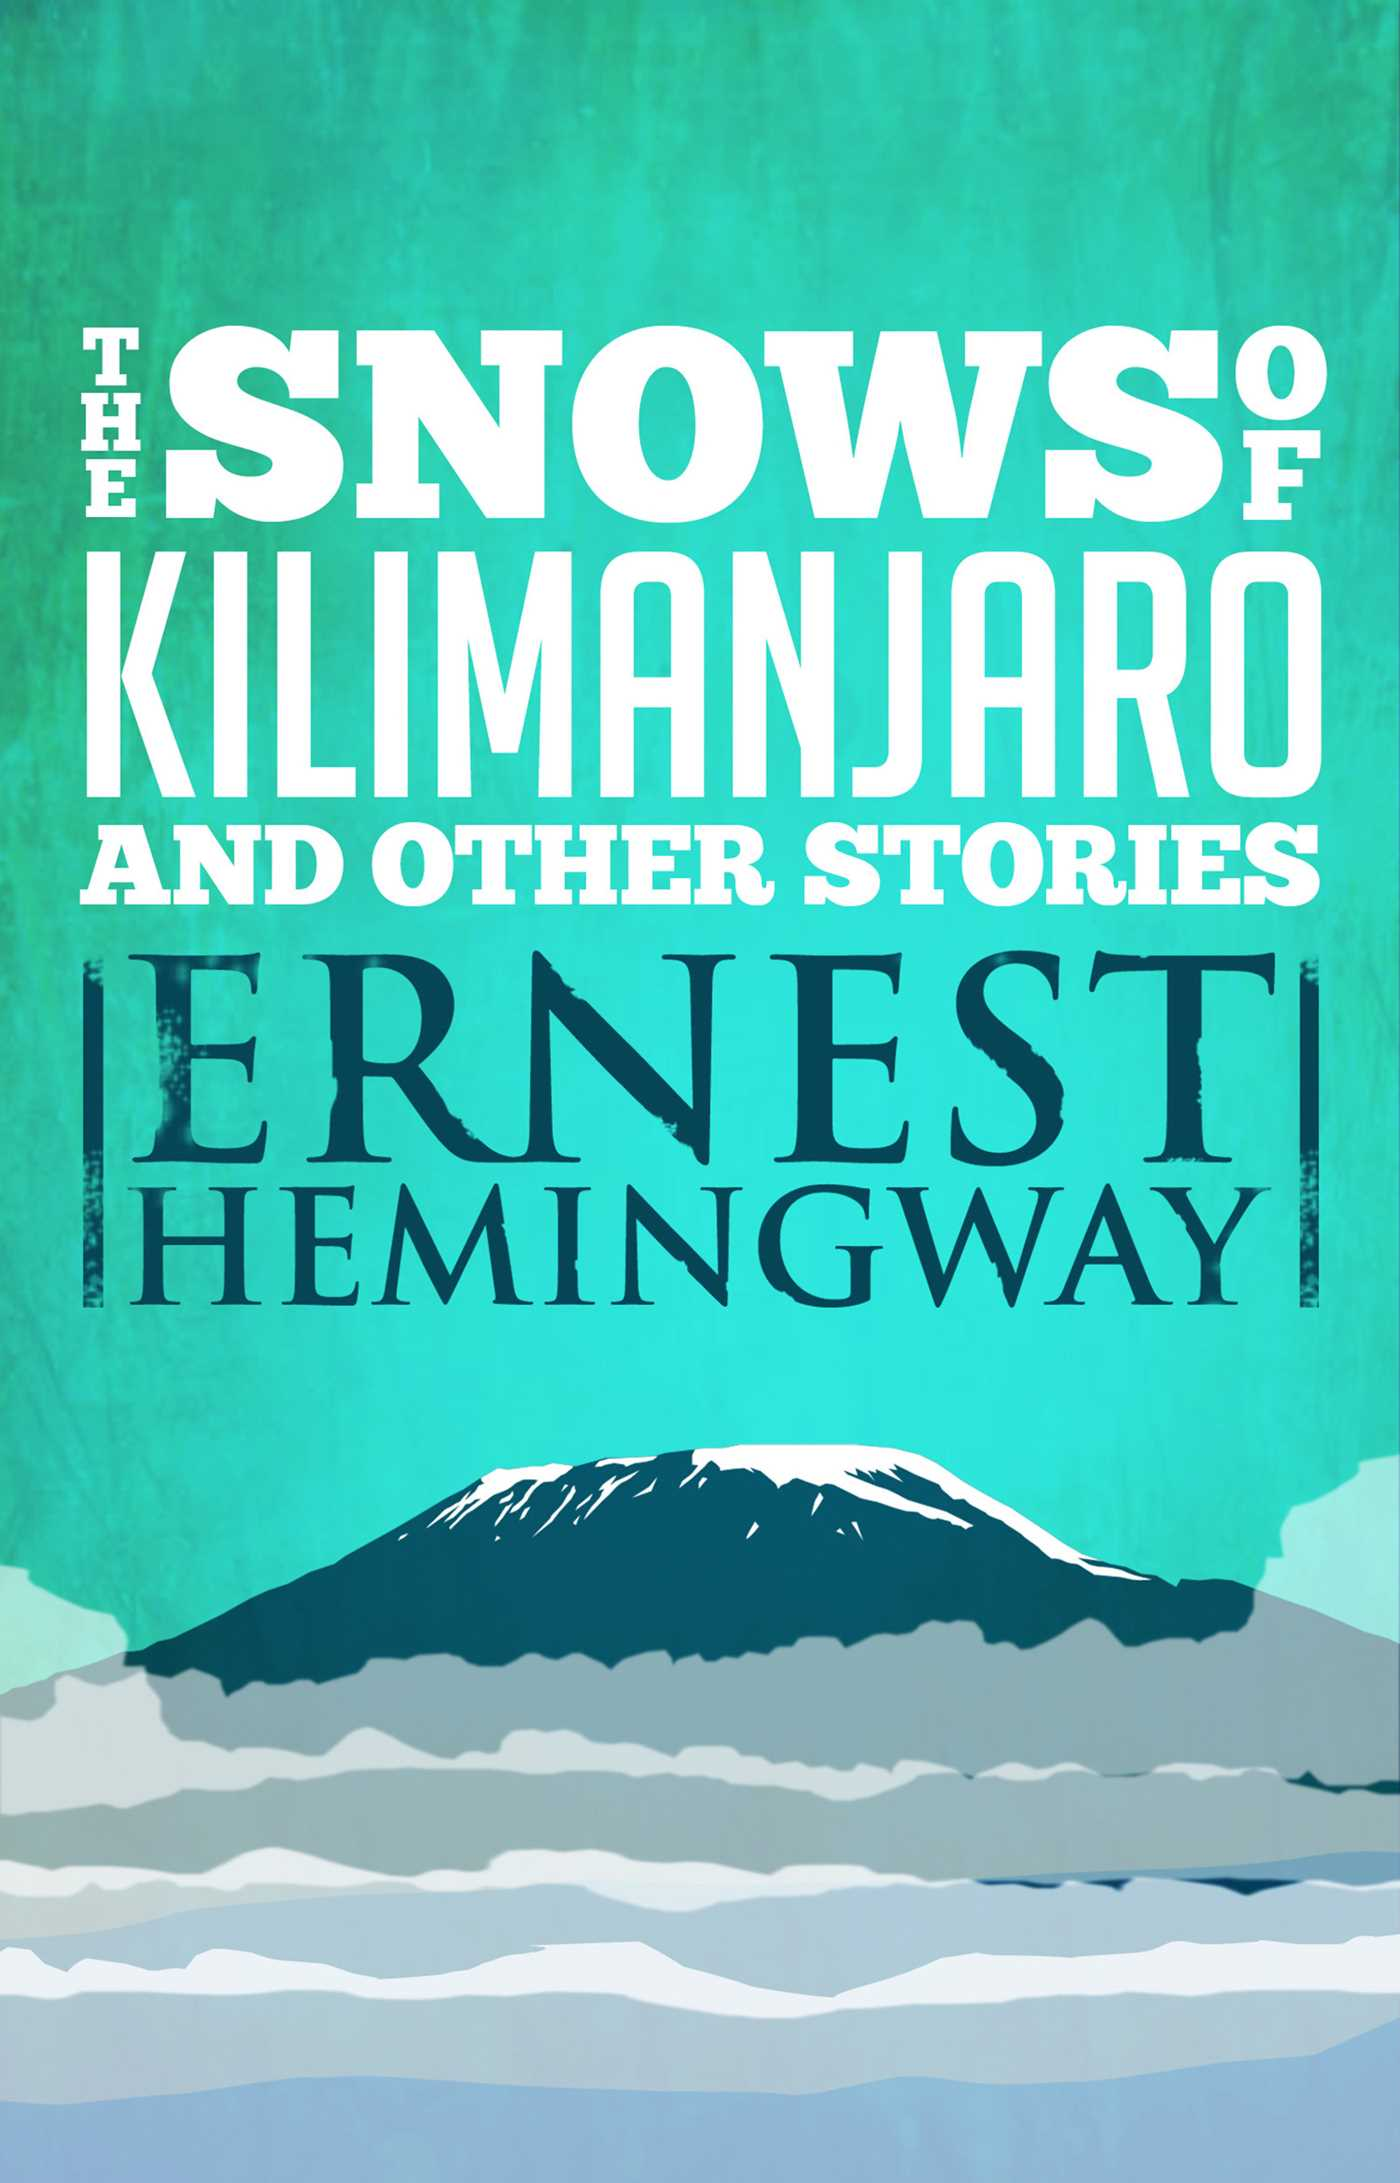 the story of violence in the book the snows of kilimanjaro by ernest hemingway Written by ernest hemingway, narrated by stacy keach download and keep this  book for free with a 30 day trial  the ideal introduction to the genius of ernest  hemingway, the snows of kilimanjaro and other stories contains ten of  best  sellers new releases crime & thrillers sci-fi & fantasy classics.